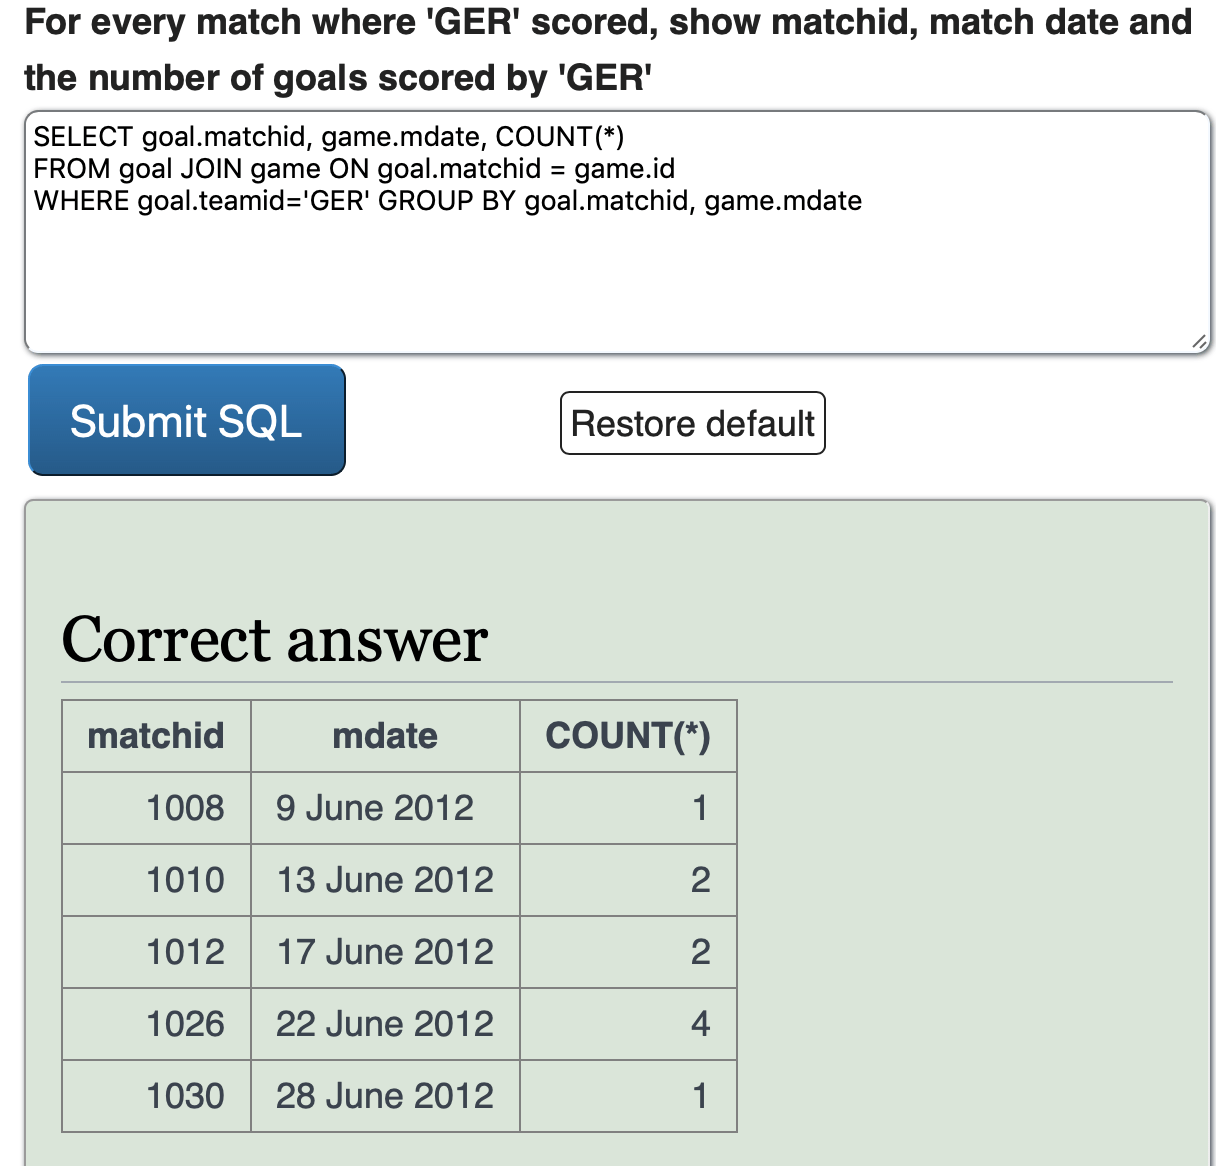 sql - Why I have to use group by on 2 columns? Why group by on 1 column give me error? - Stack Overflow